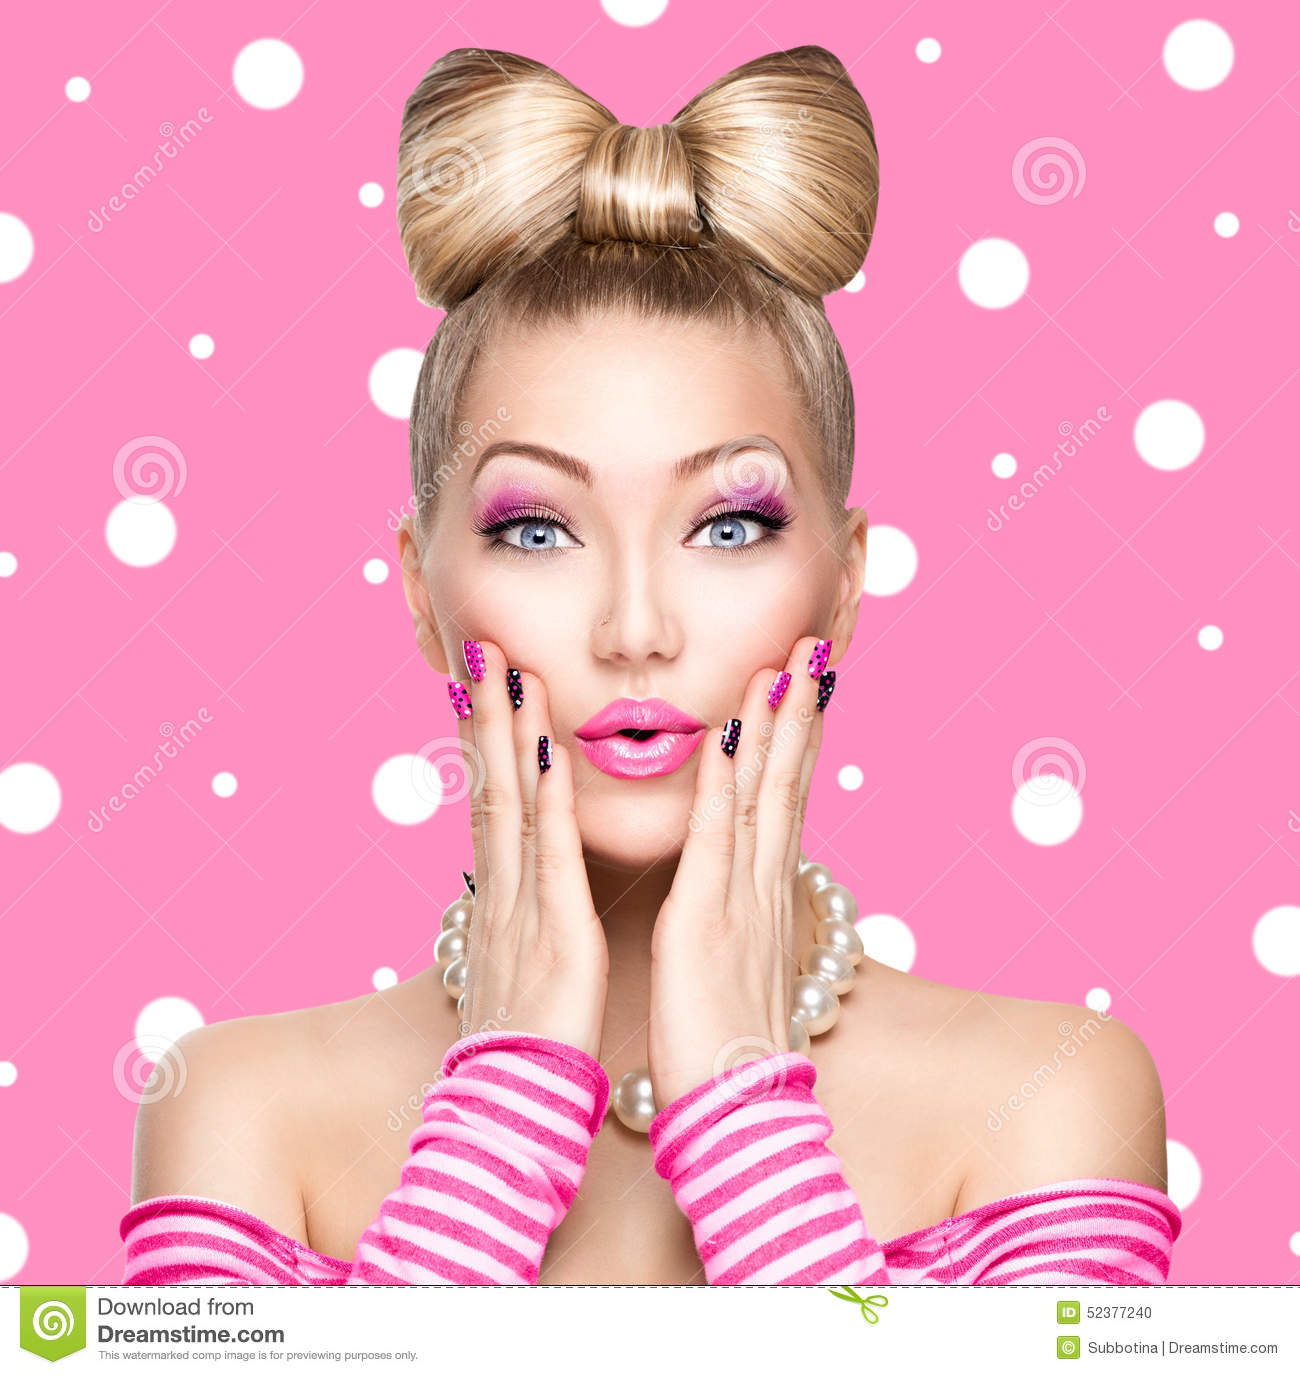 Beauty model girl with bow hairstyle